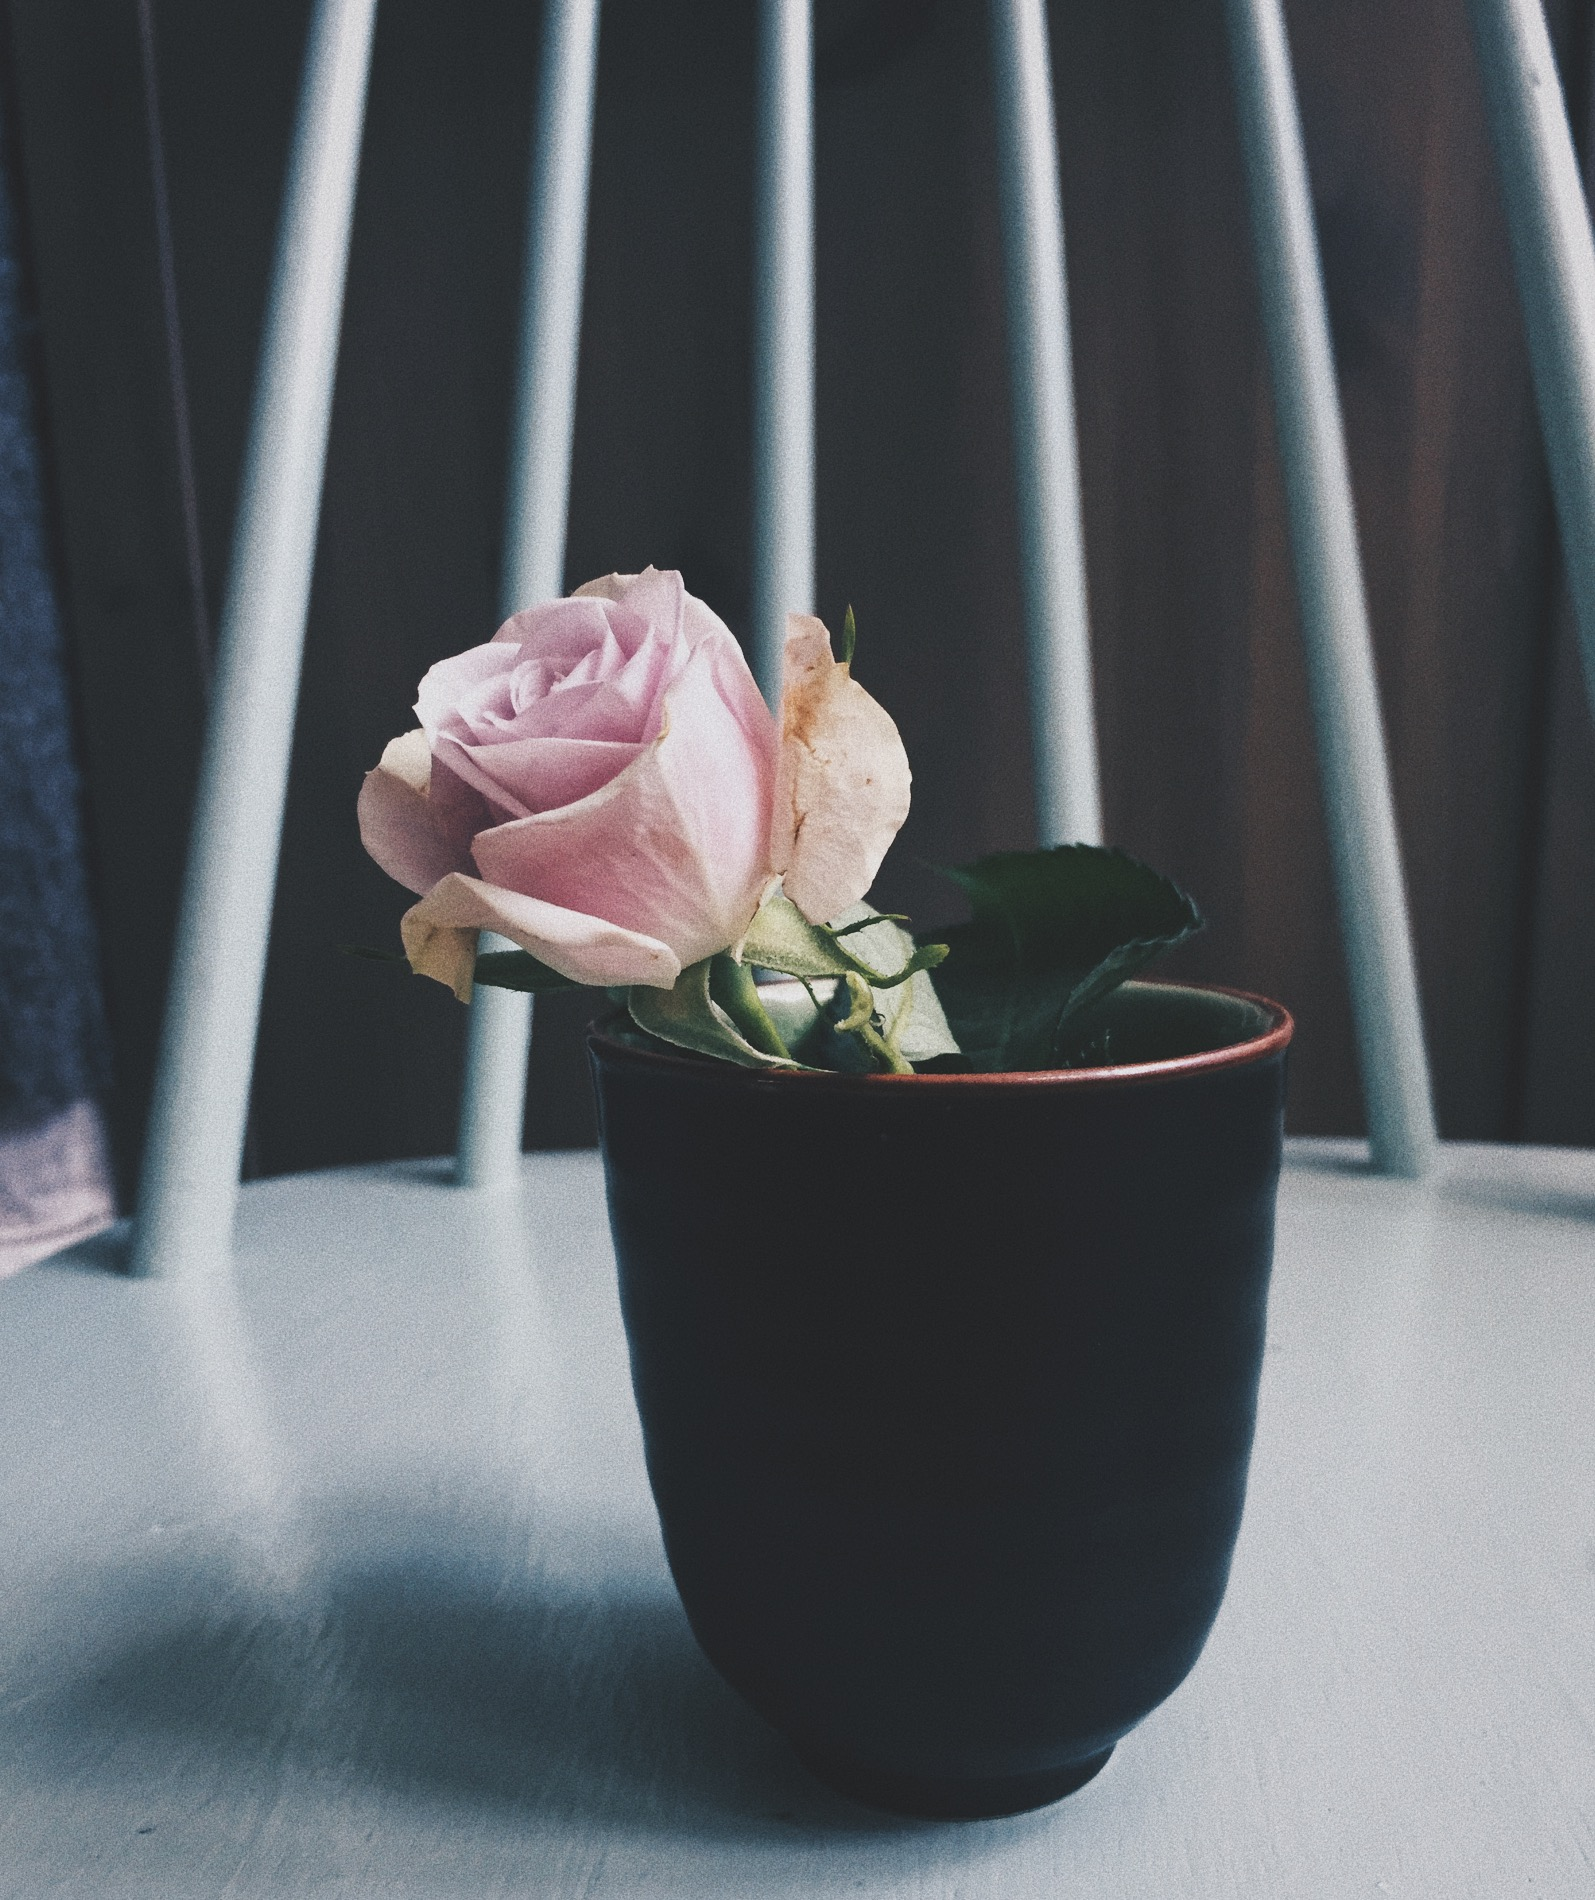 Celebrating the Imperfect-Photos from the archive. Rose in a little vase